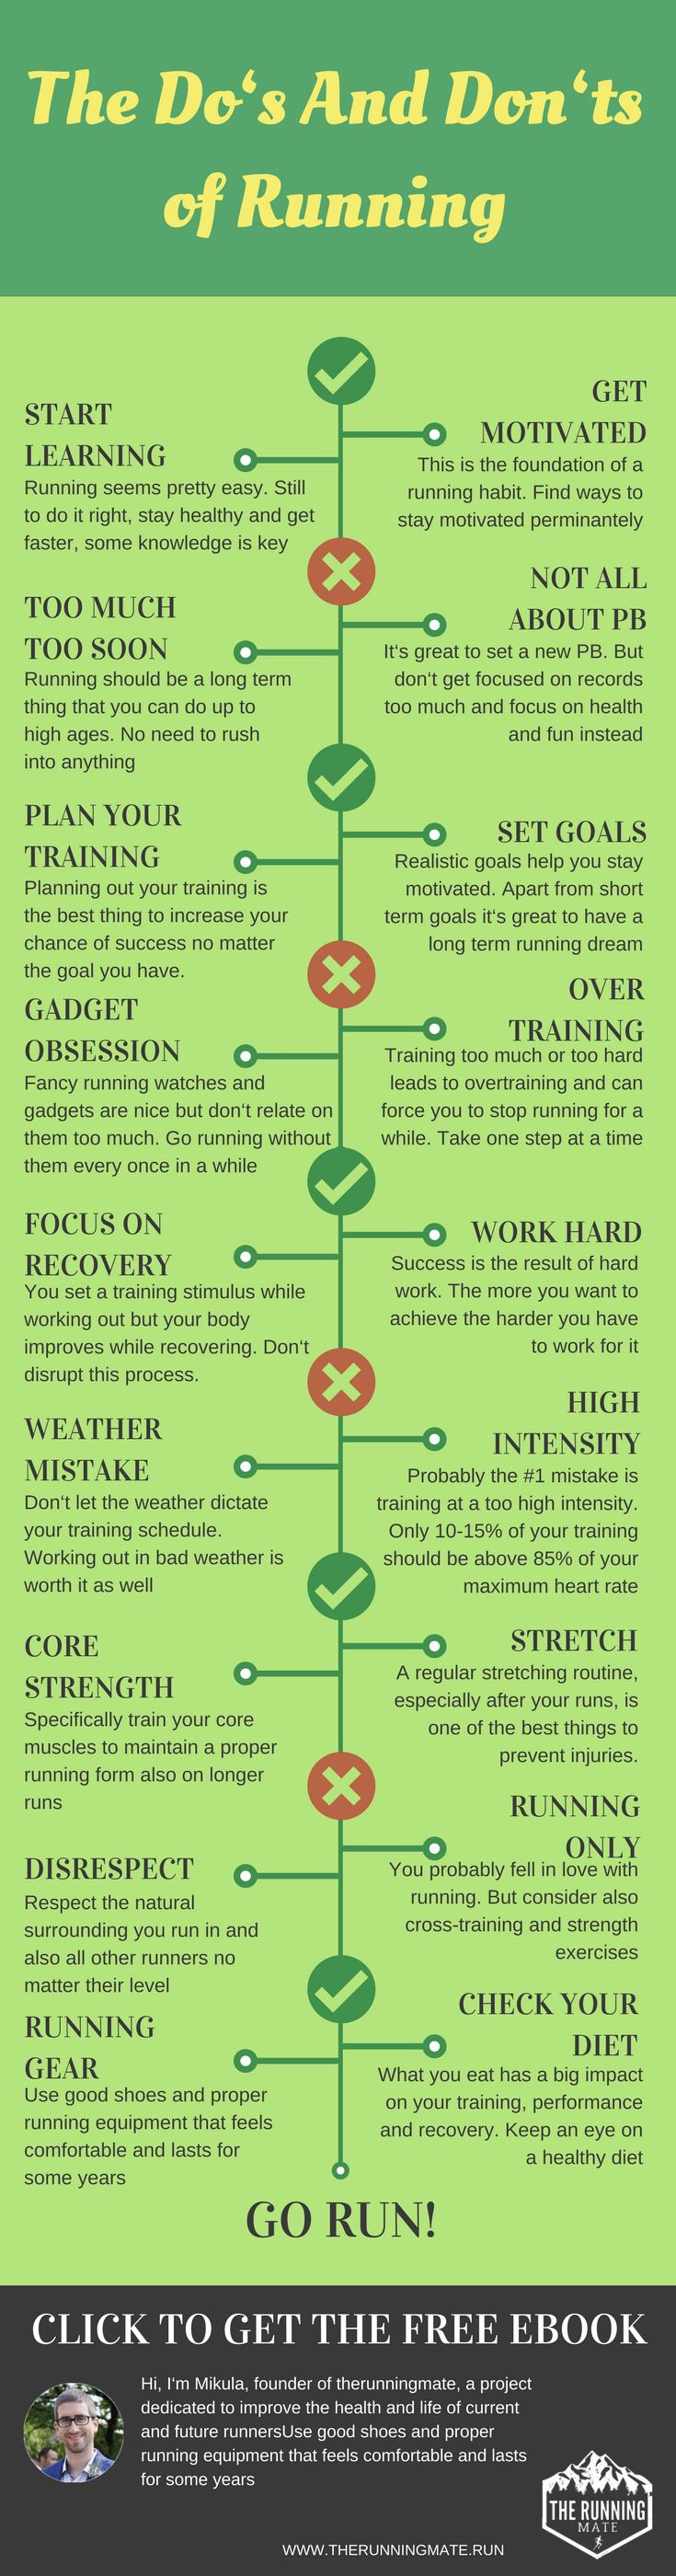 10288 best running motivation quotes images on pinterest running theres stuff to do in your running training and stuff you should avoid check out this infographic to get an overview and visit to get your free ebook fandeluxe Document